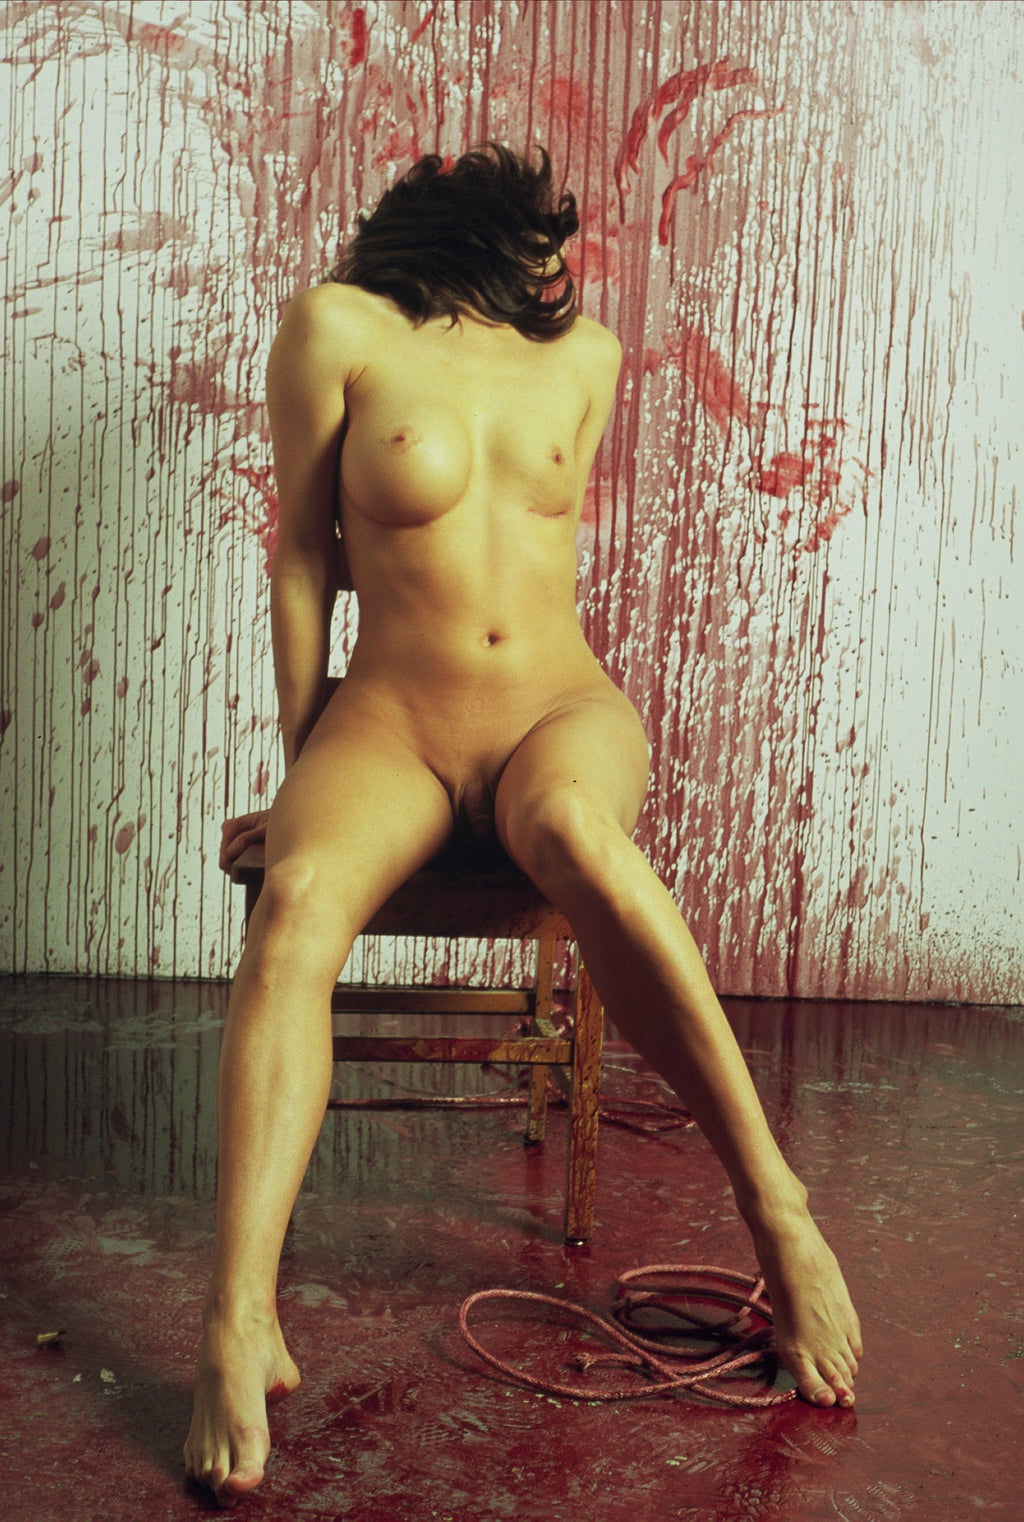 BRUCE LABRUCE, Transwoman with Blood, 2006